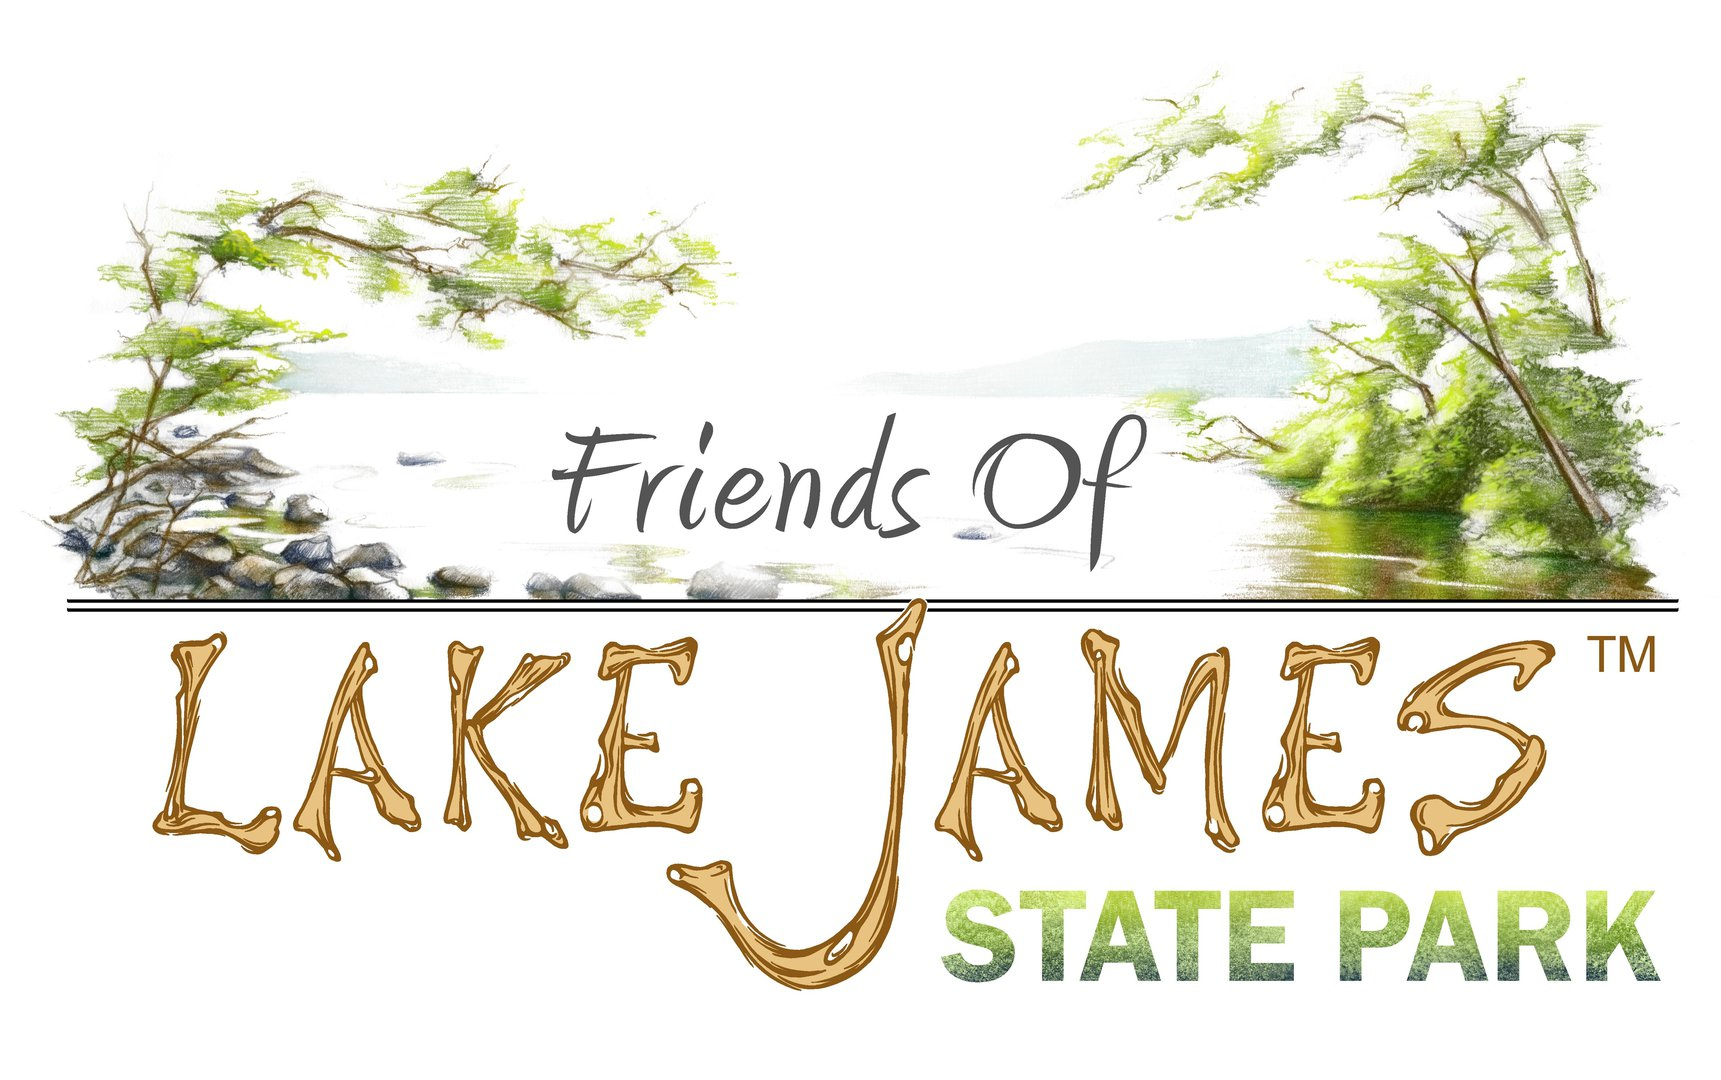 Friends of Lake James State Park